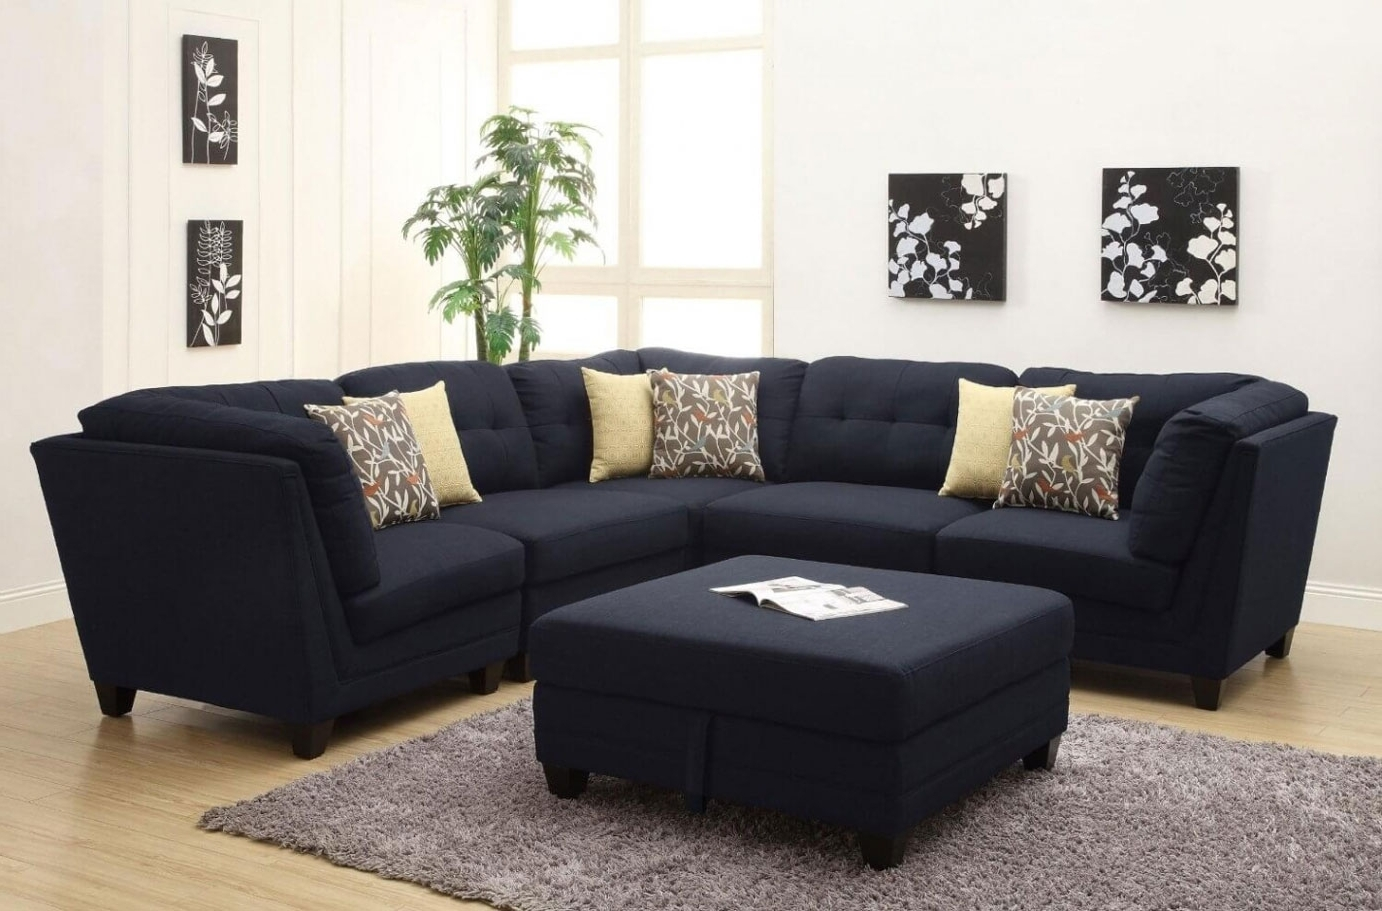 Sectional Sofa: Most Recommended Sectional Sofas Under $1000 Intended For Most Recent Grande Prairie Ab Sectional Sofas (View 19 of 20)